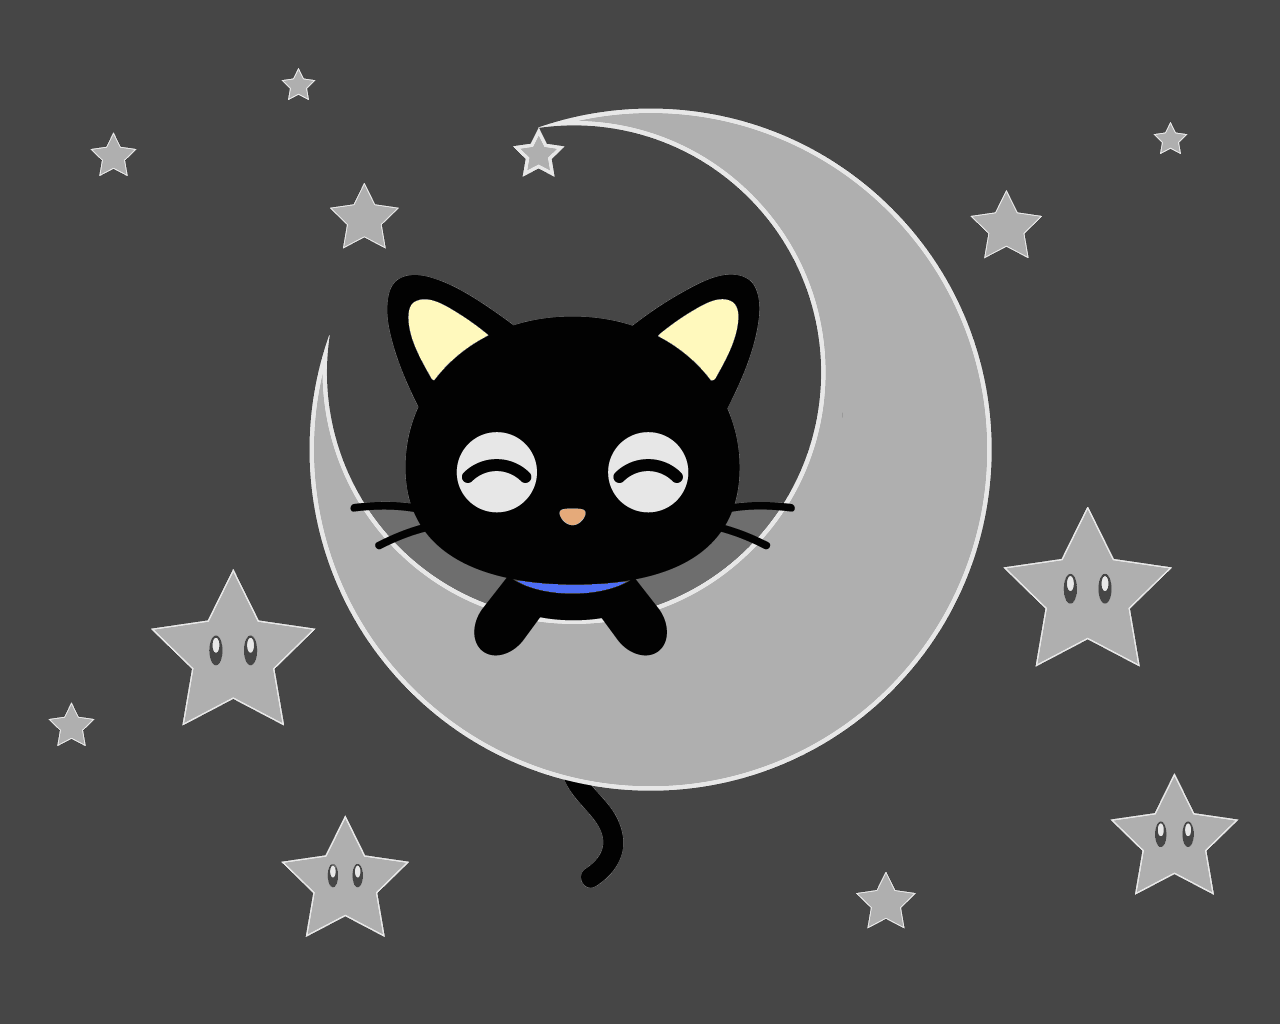 Free Download Chococat Images Chococat Wallpaper Hd Wallpaper And 1280x1024 For Your Desktop Mobile Tablet Explore 72 Chococat Wallpaper Kuromi Wallpaper My Melody Wallpaper